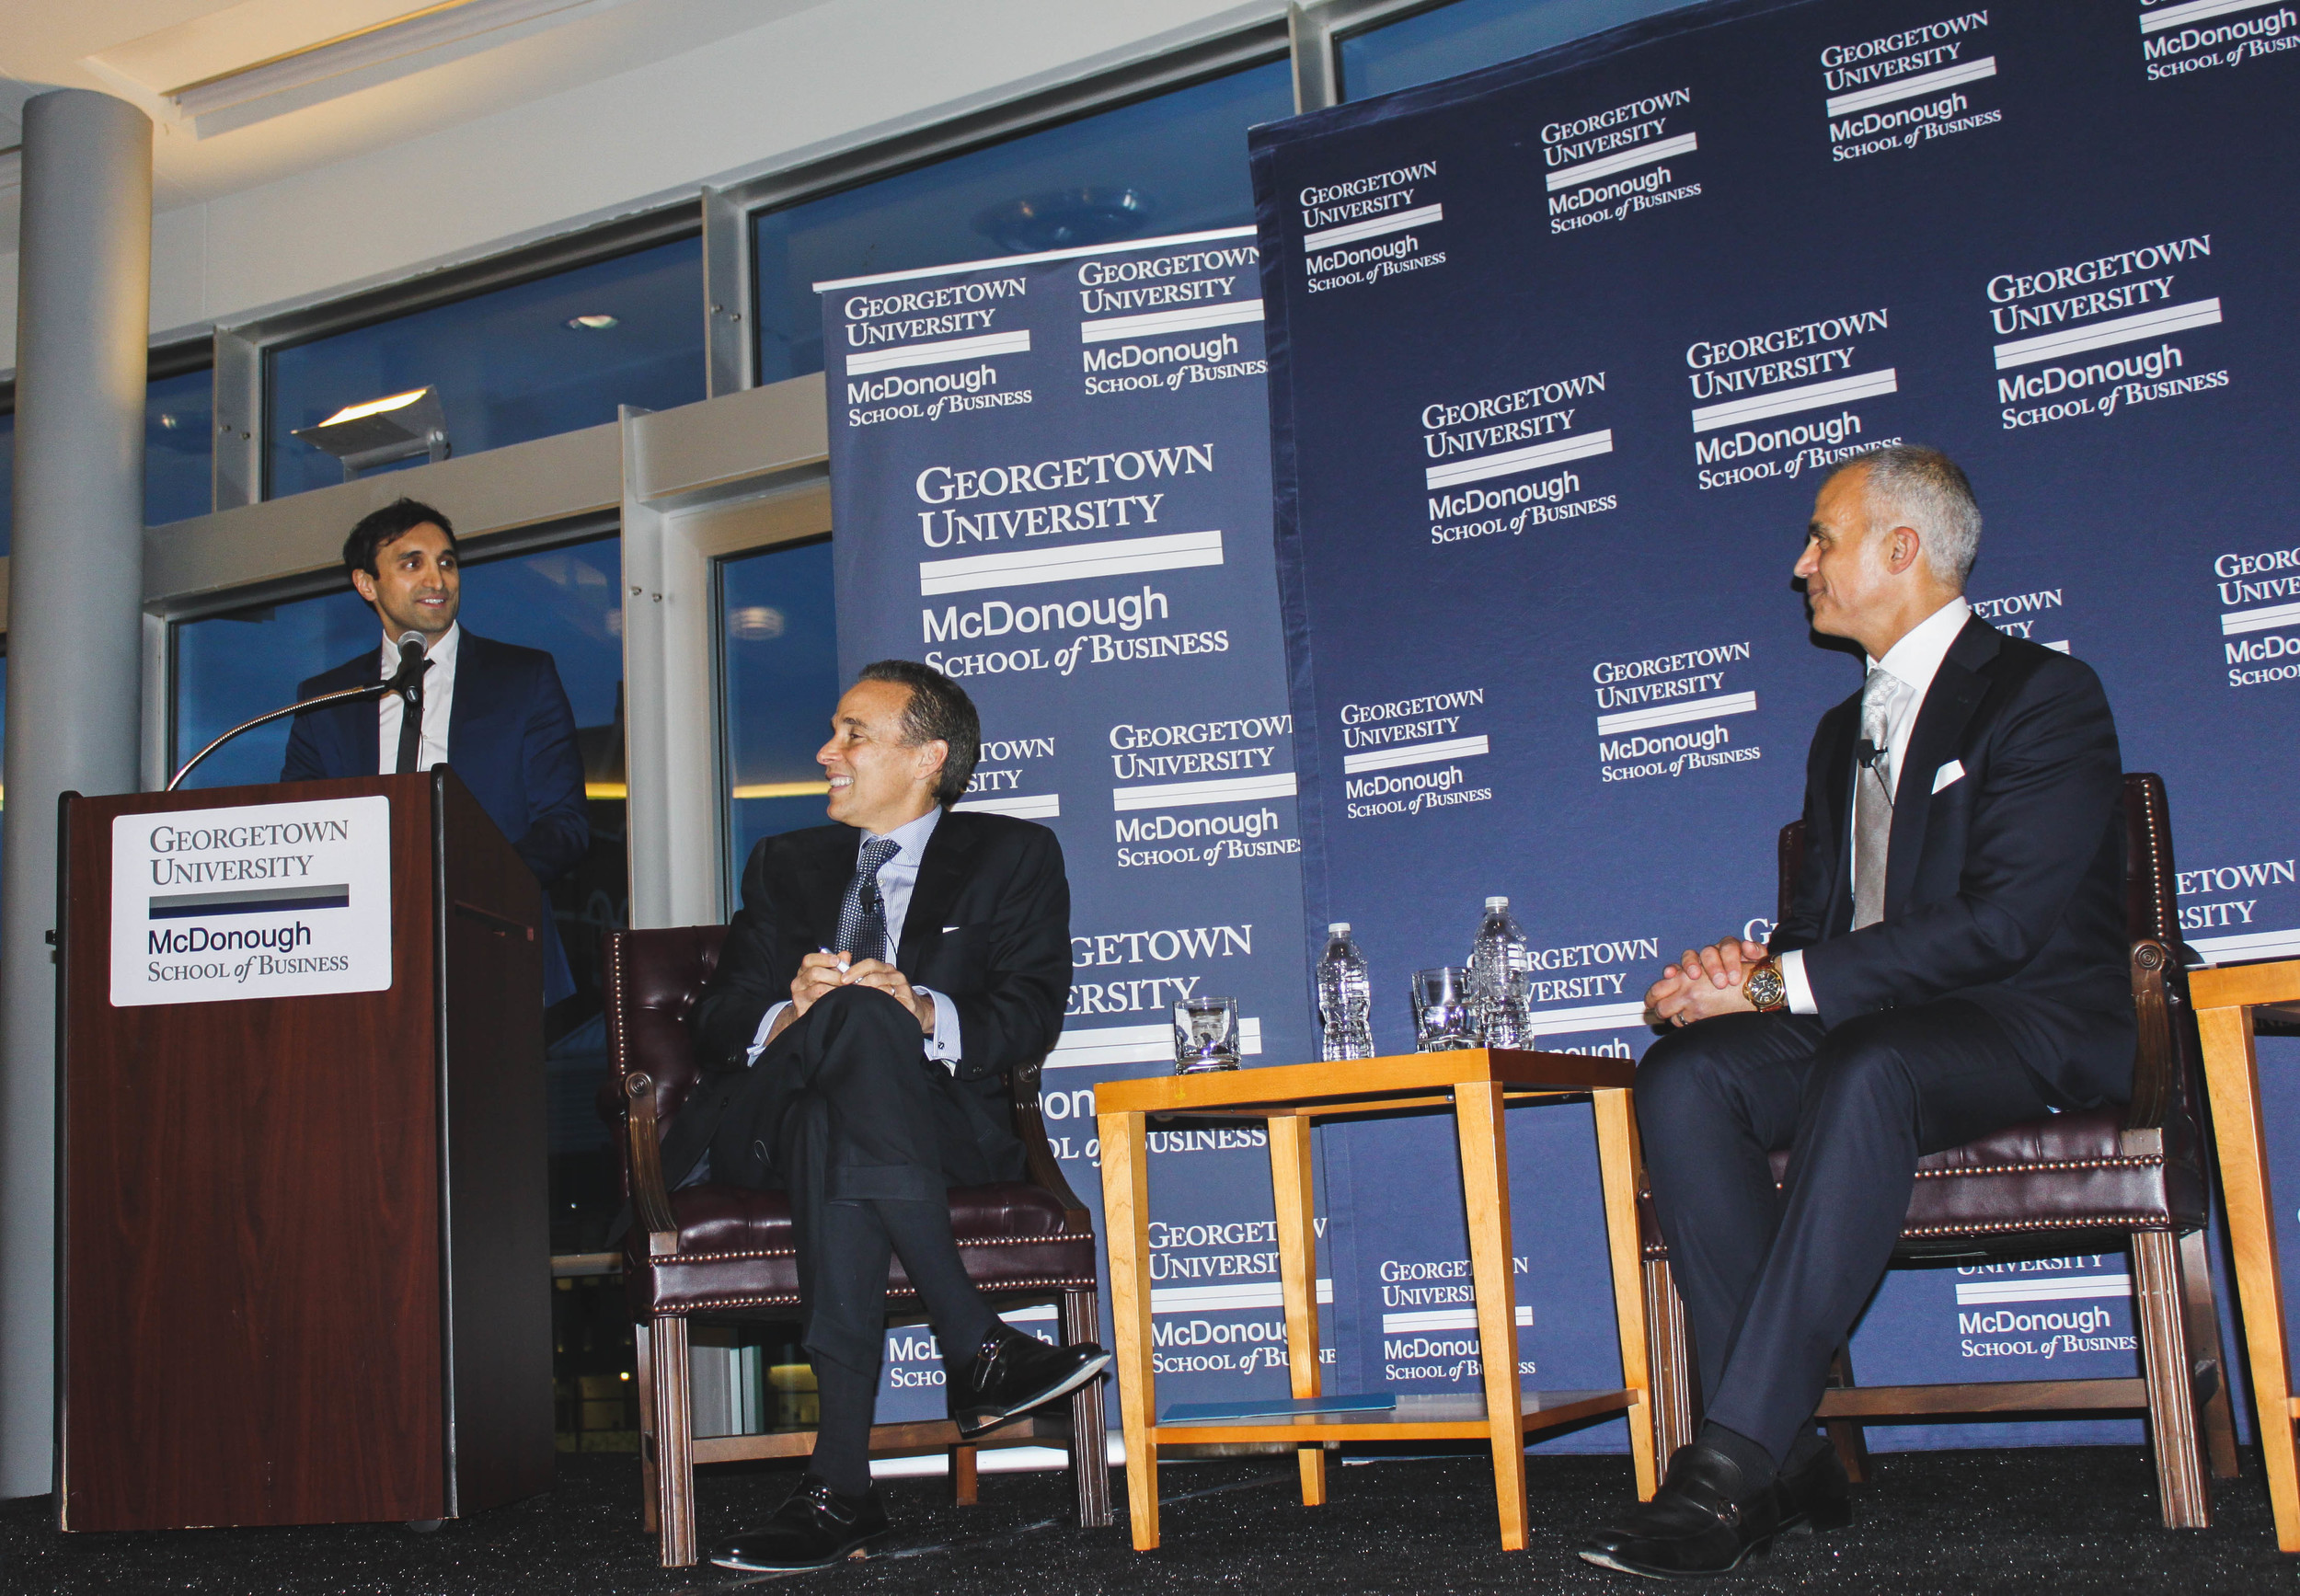 Ajaz Ahmed at the podium with Professor Ricardo Ernst and Mark Del Rosso